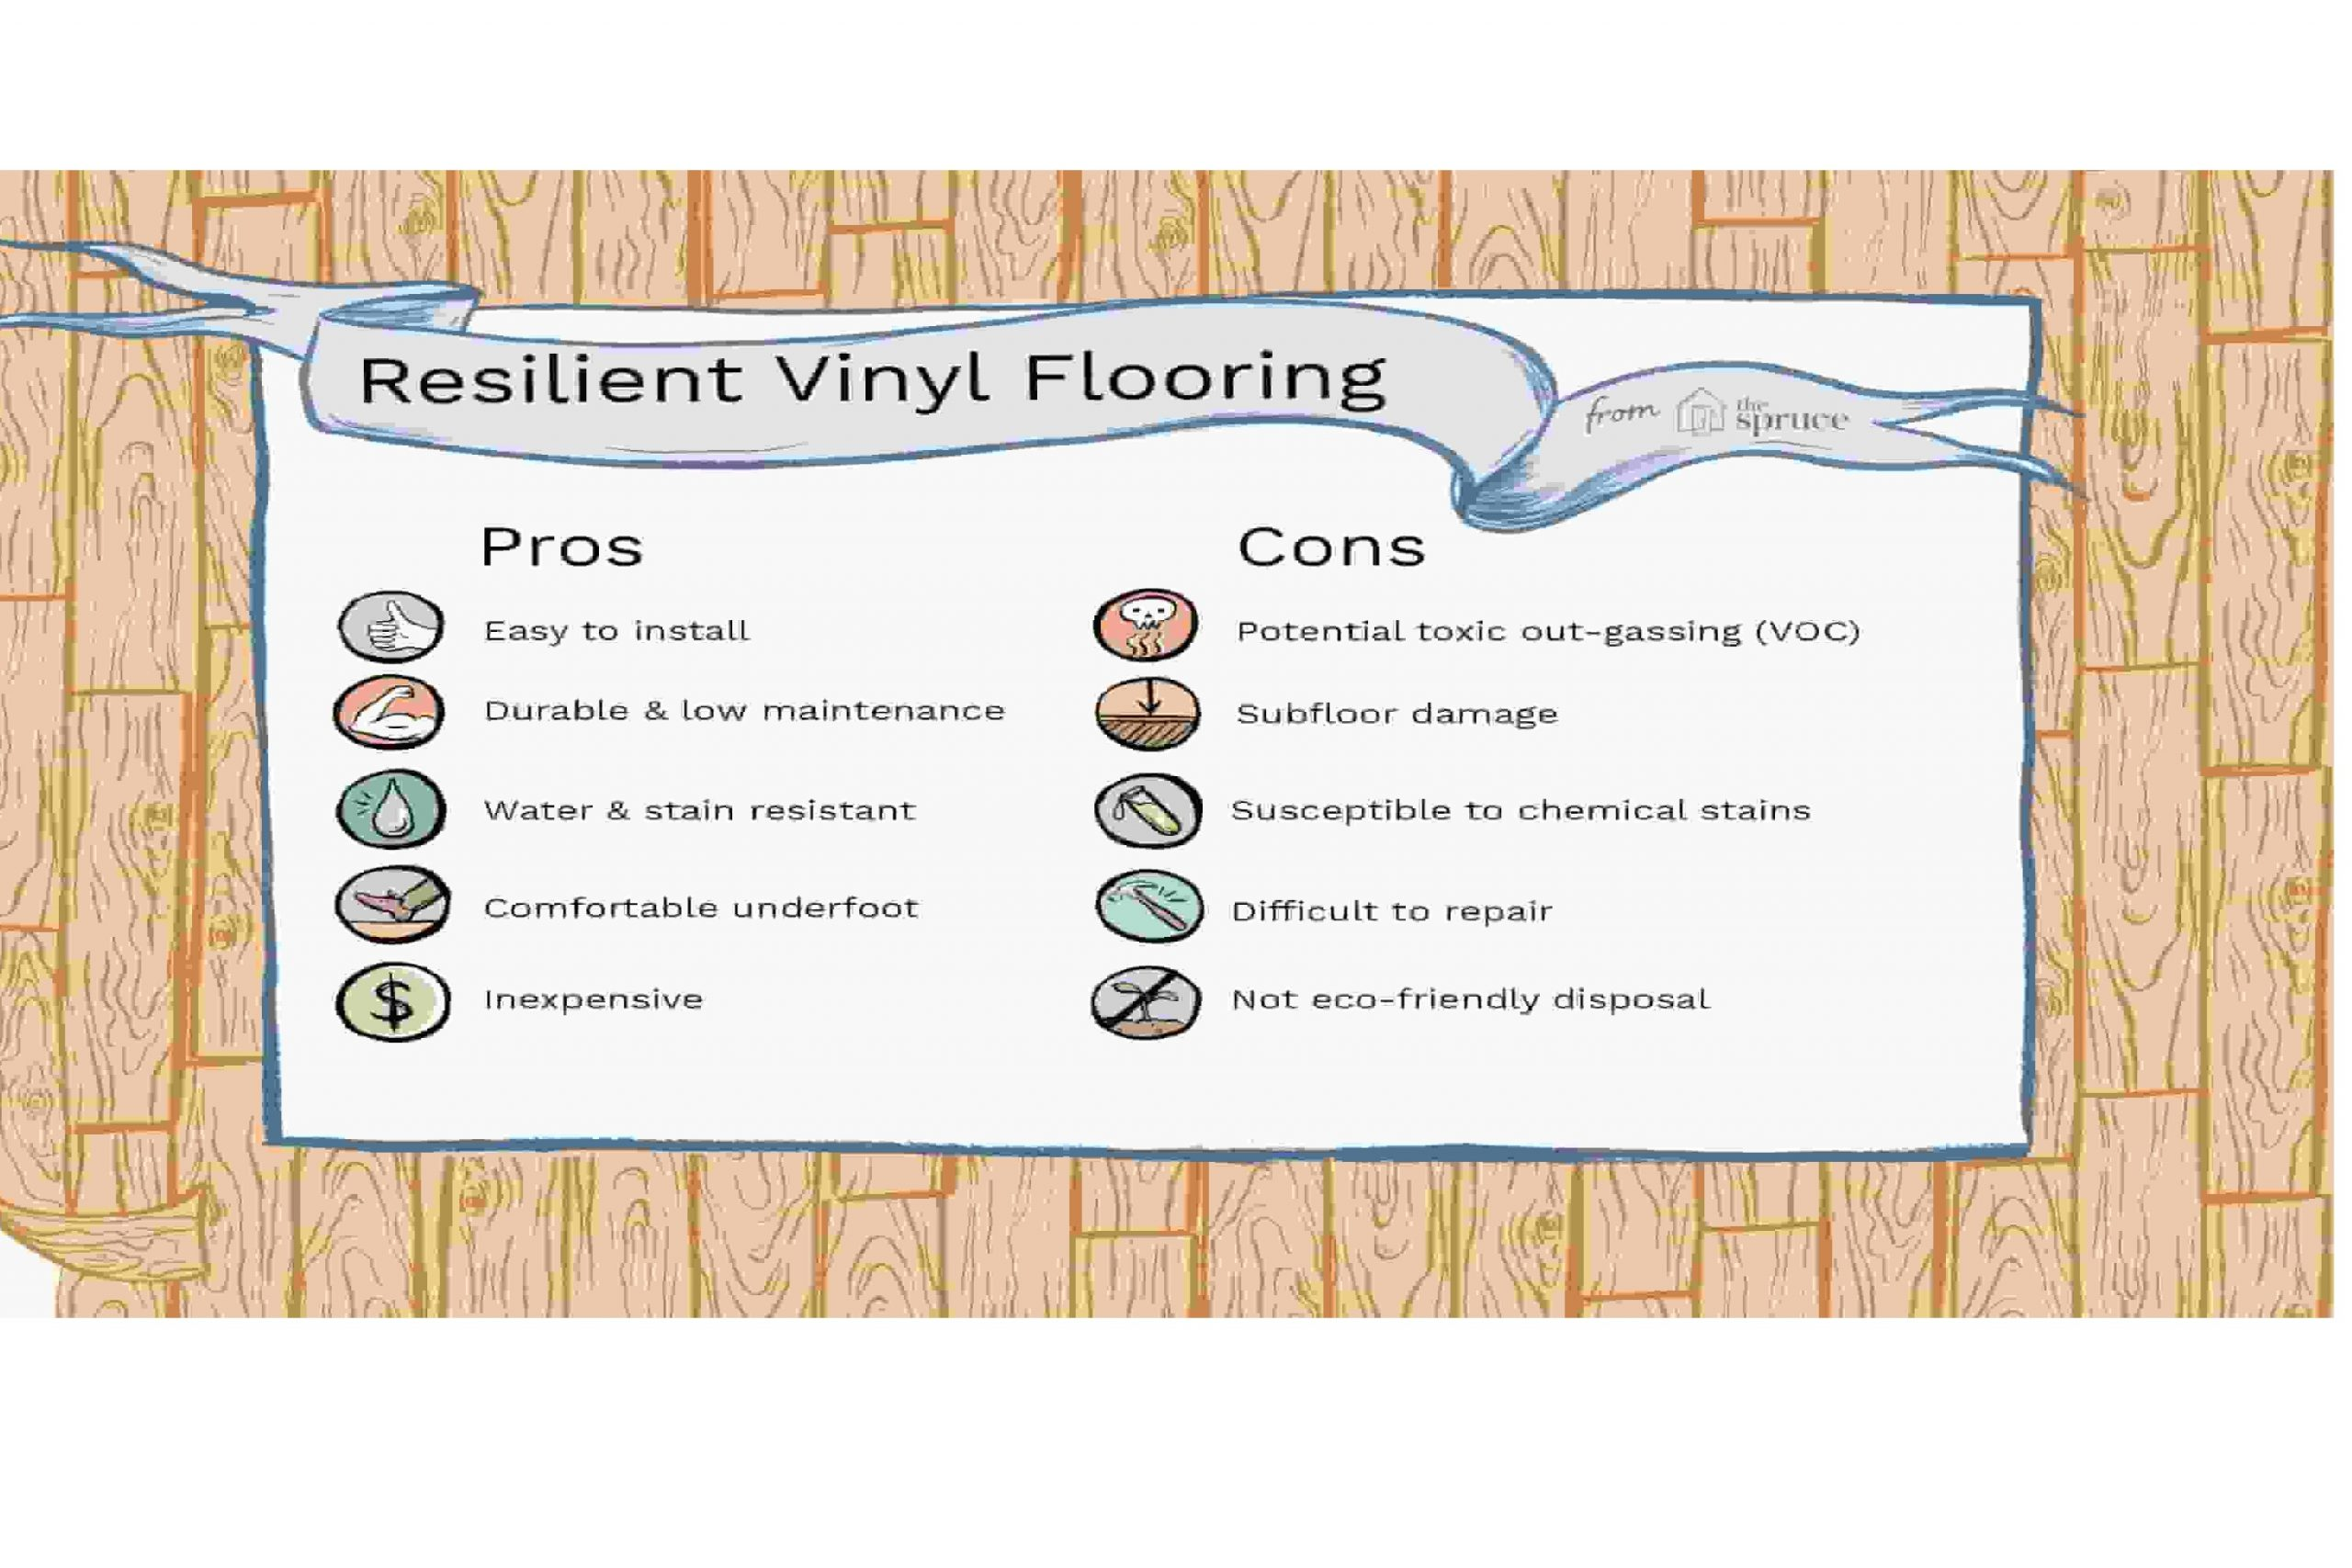 pros and cons of vinyl flooring